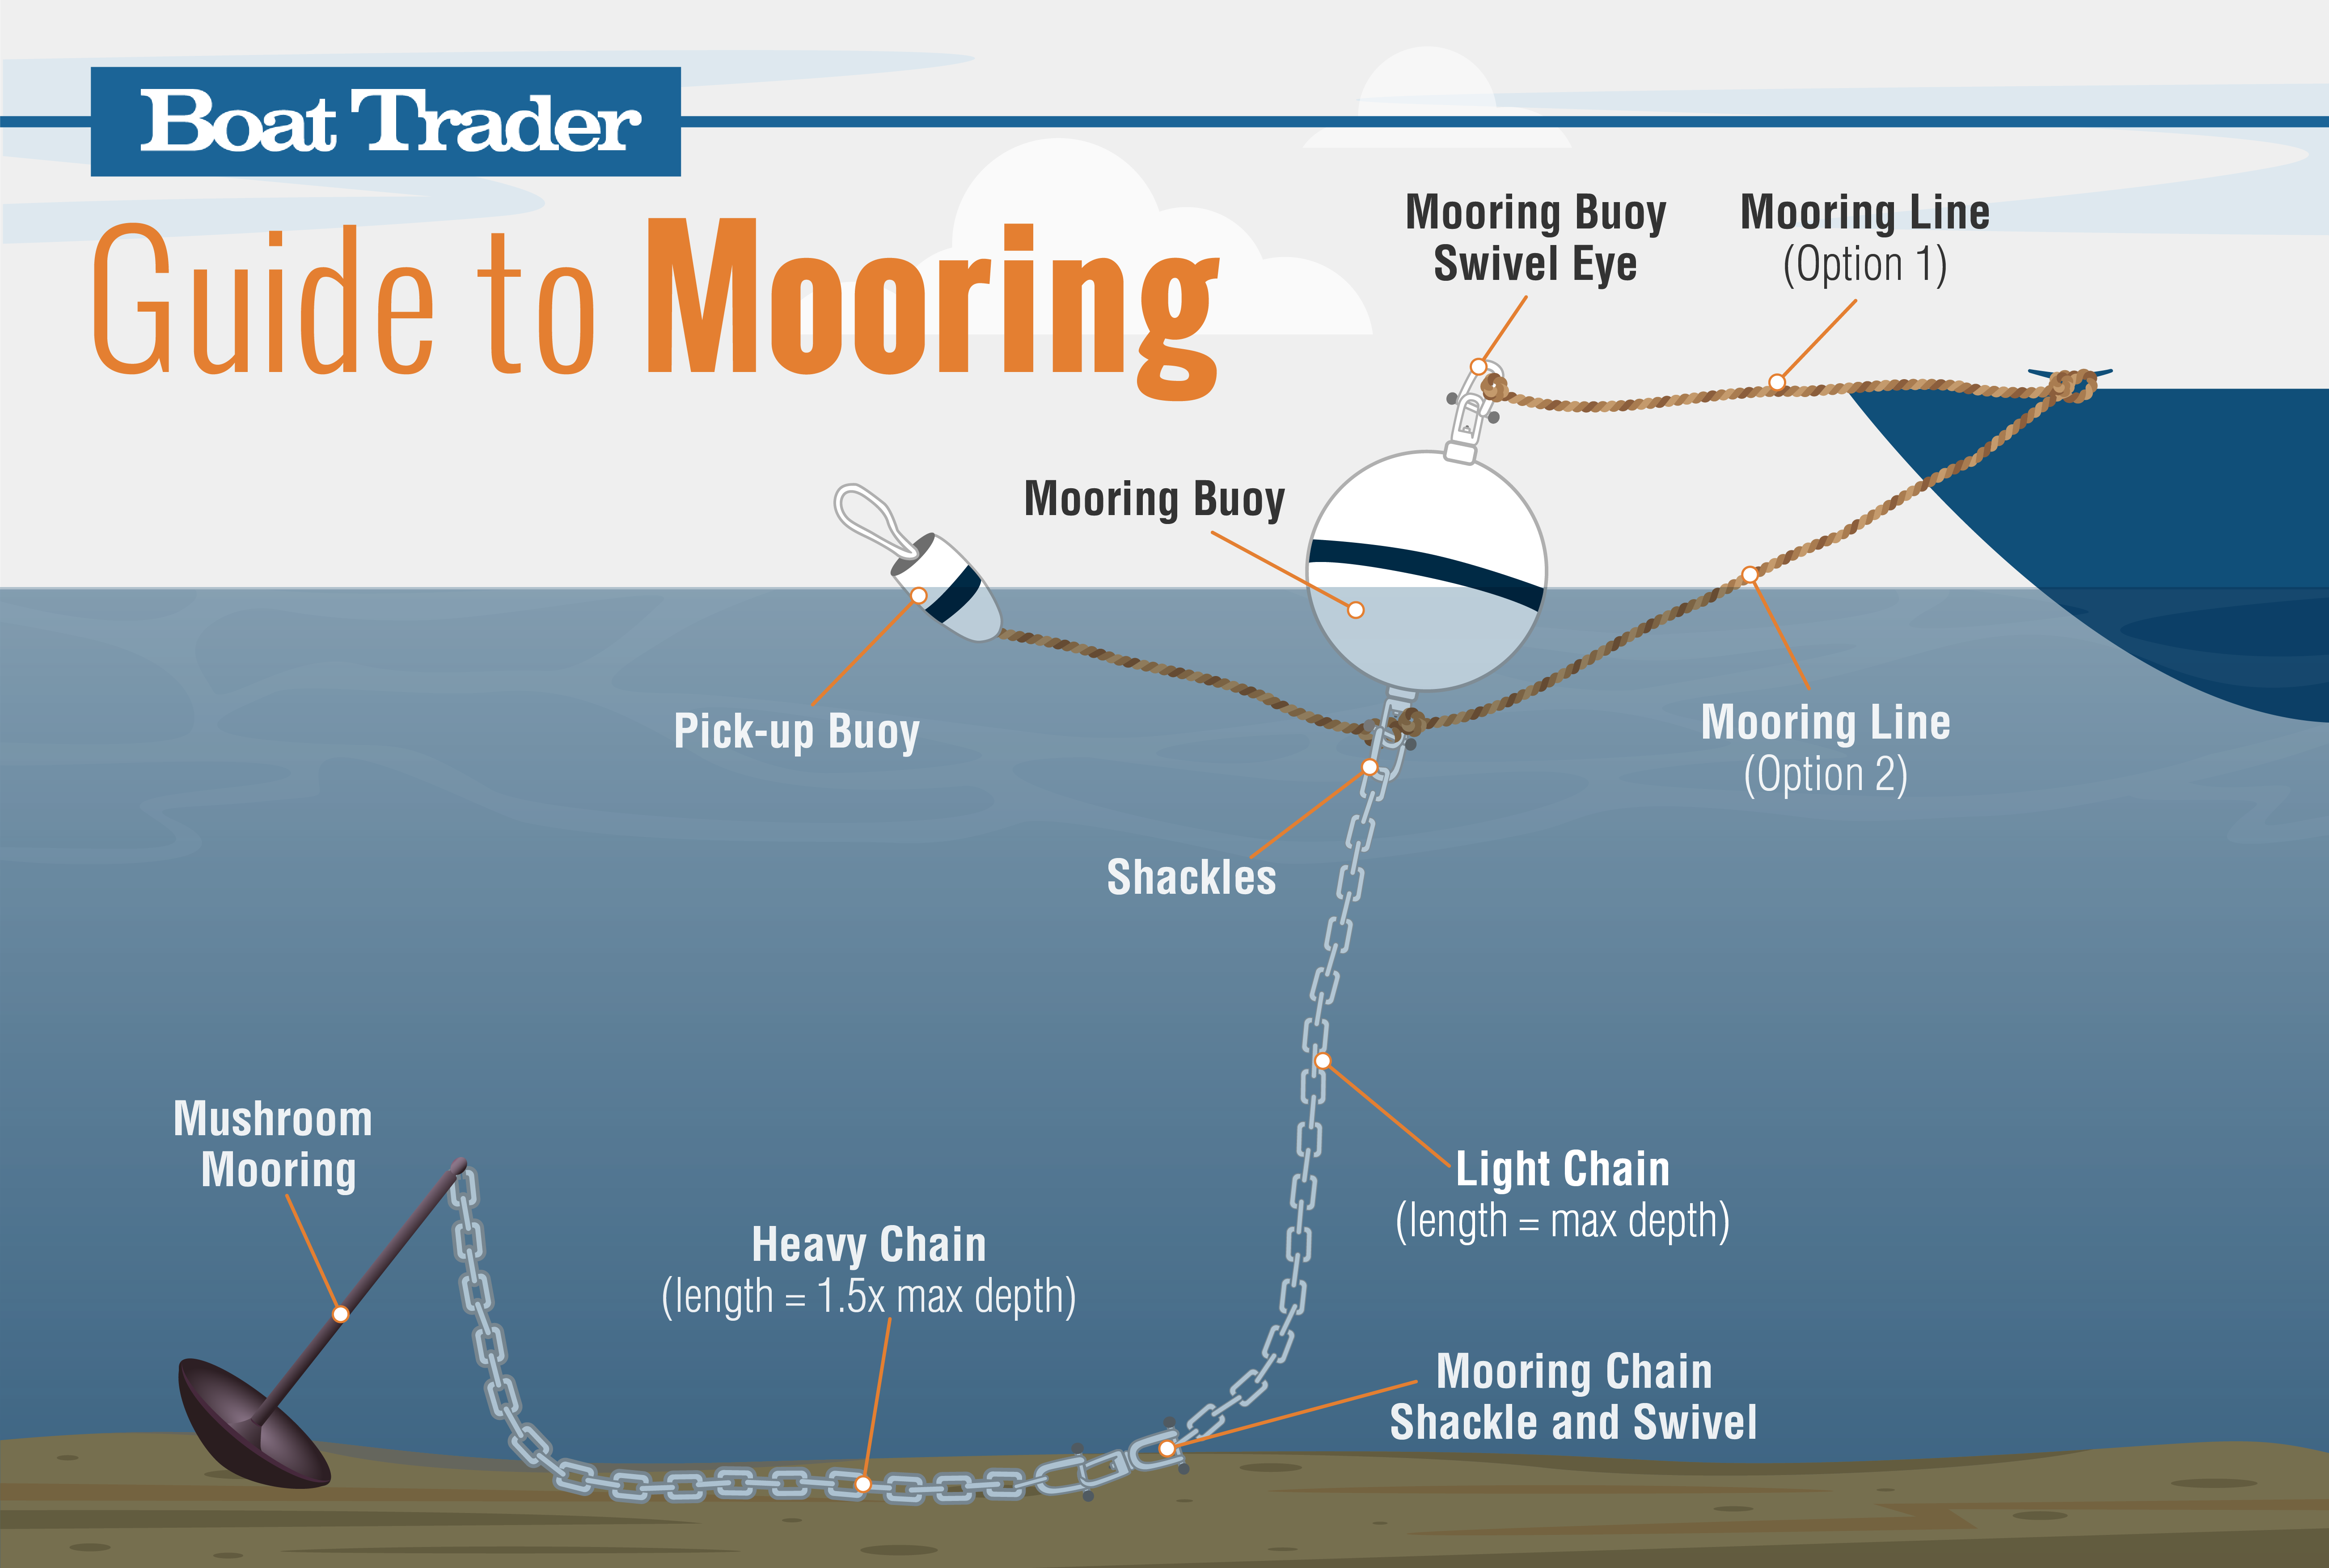 Boat Mooring Guide Graphic Illustration